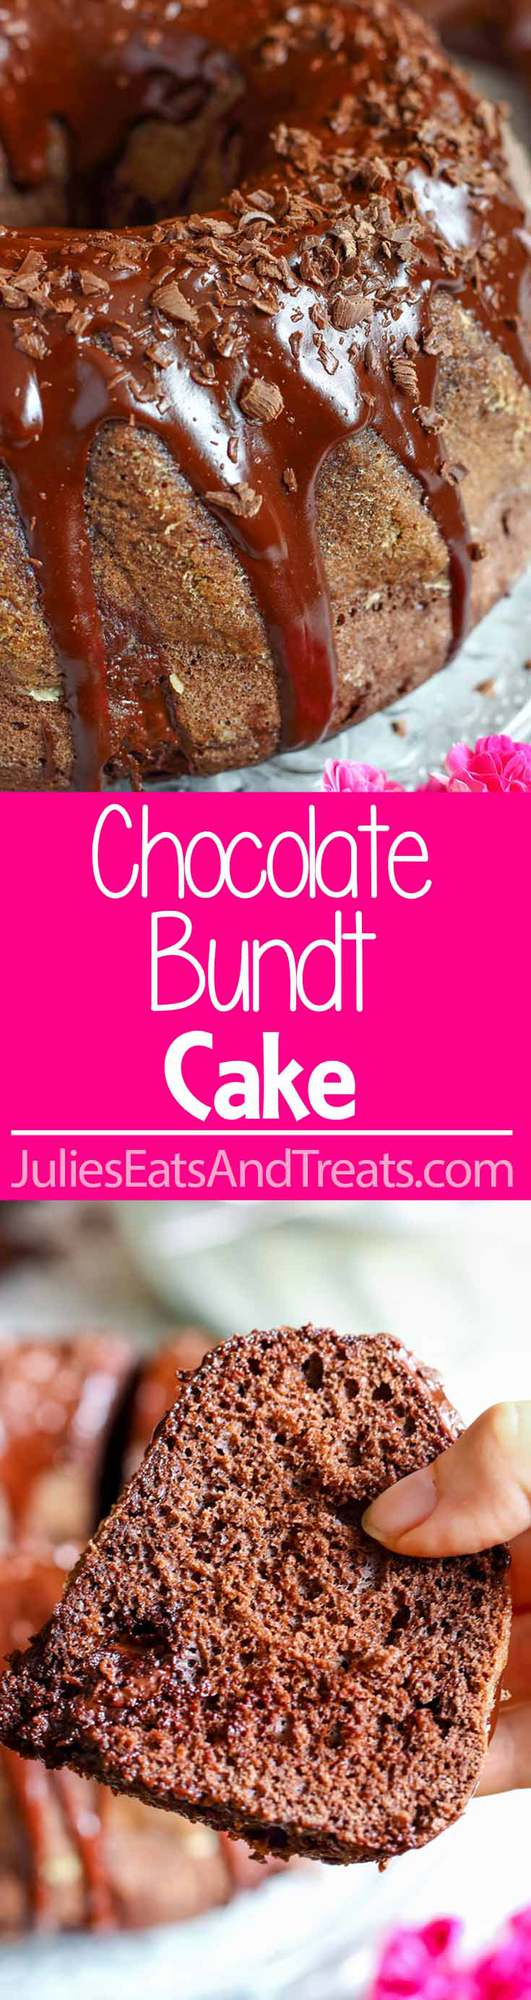 Chocolate Bundt Cake ~Wow your guests with this pretty and easy homemade chocolate cake! It's covered with chocolate glaze, chocolate shavings and has chocolate pieces inside!